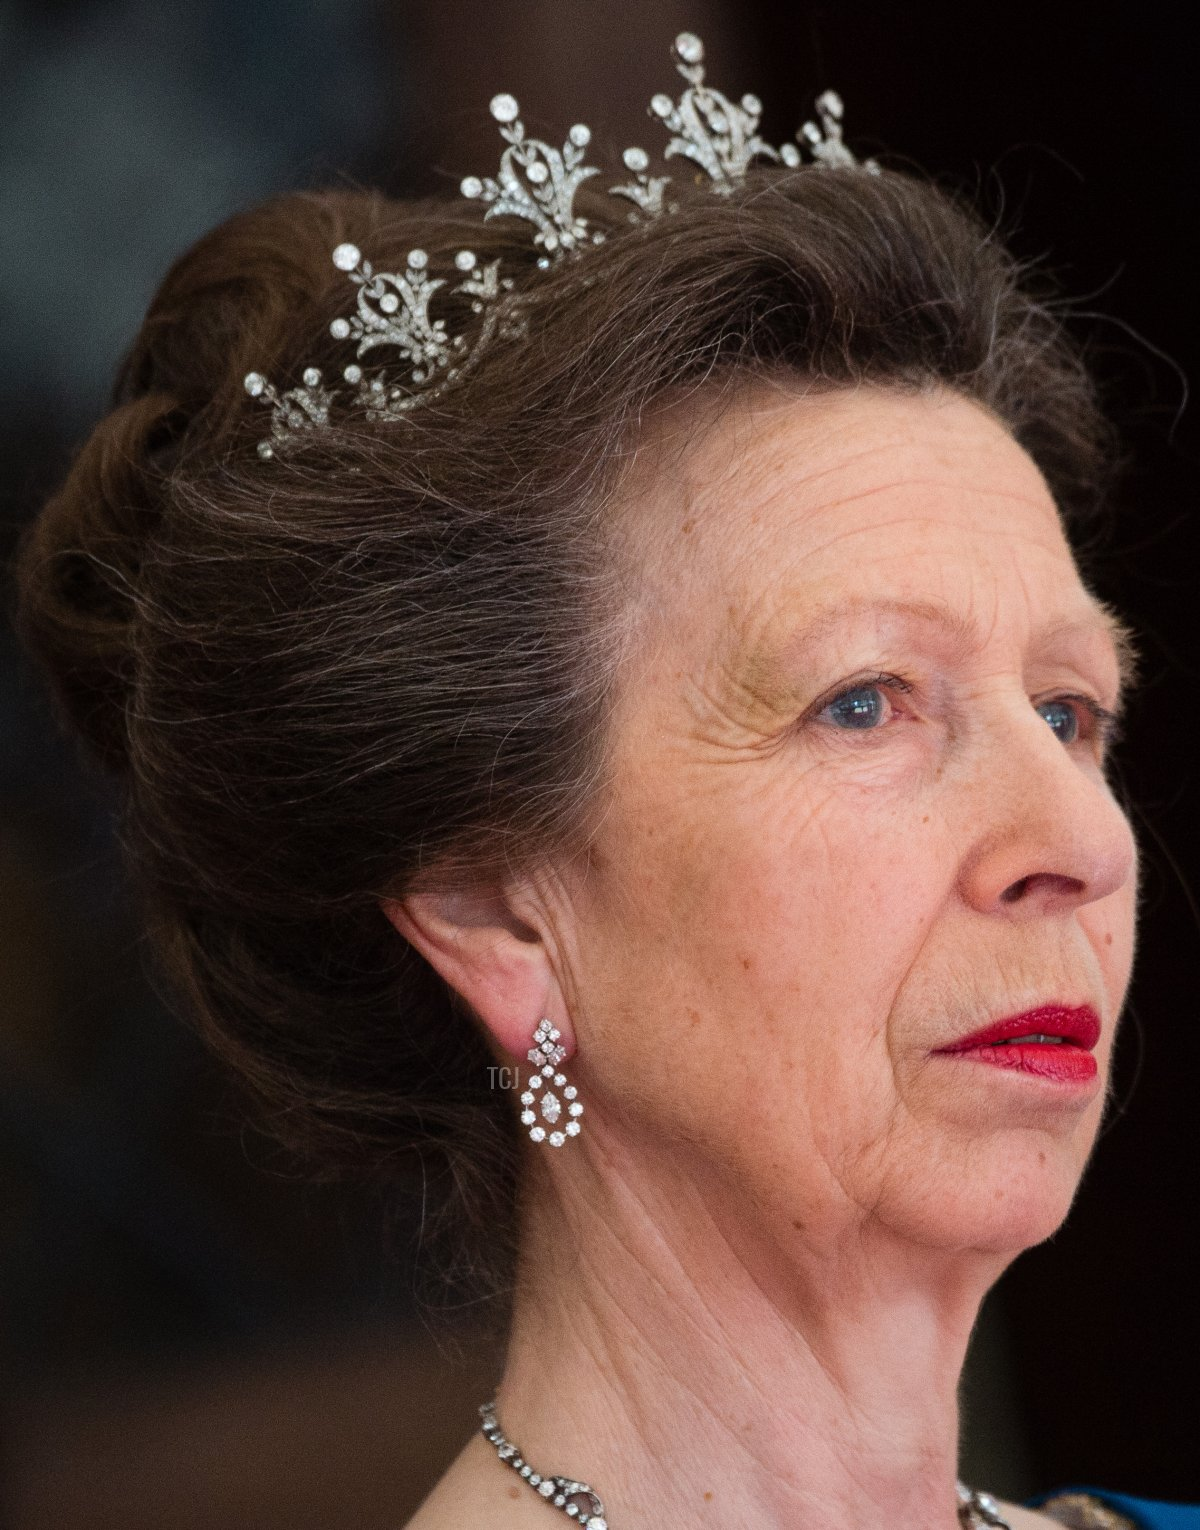 Princess Anne, Princess Royal attends the Lord Mayor's Banquet at the Guildhall during a State visit by the King and Queen of Spain on July 13, 2017 in London, England